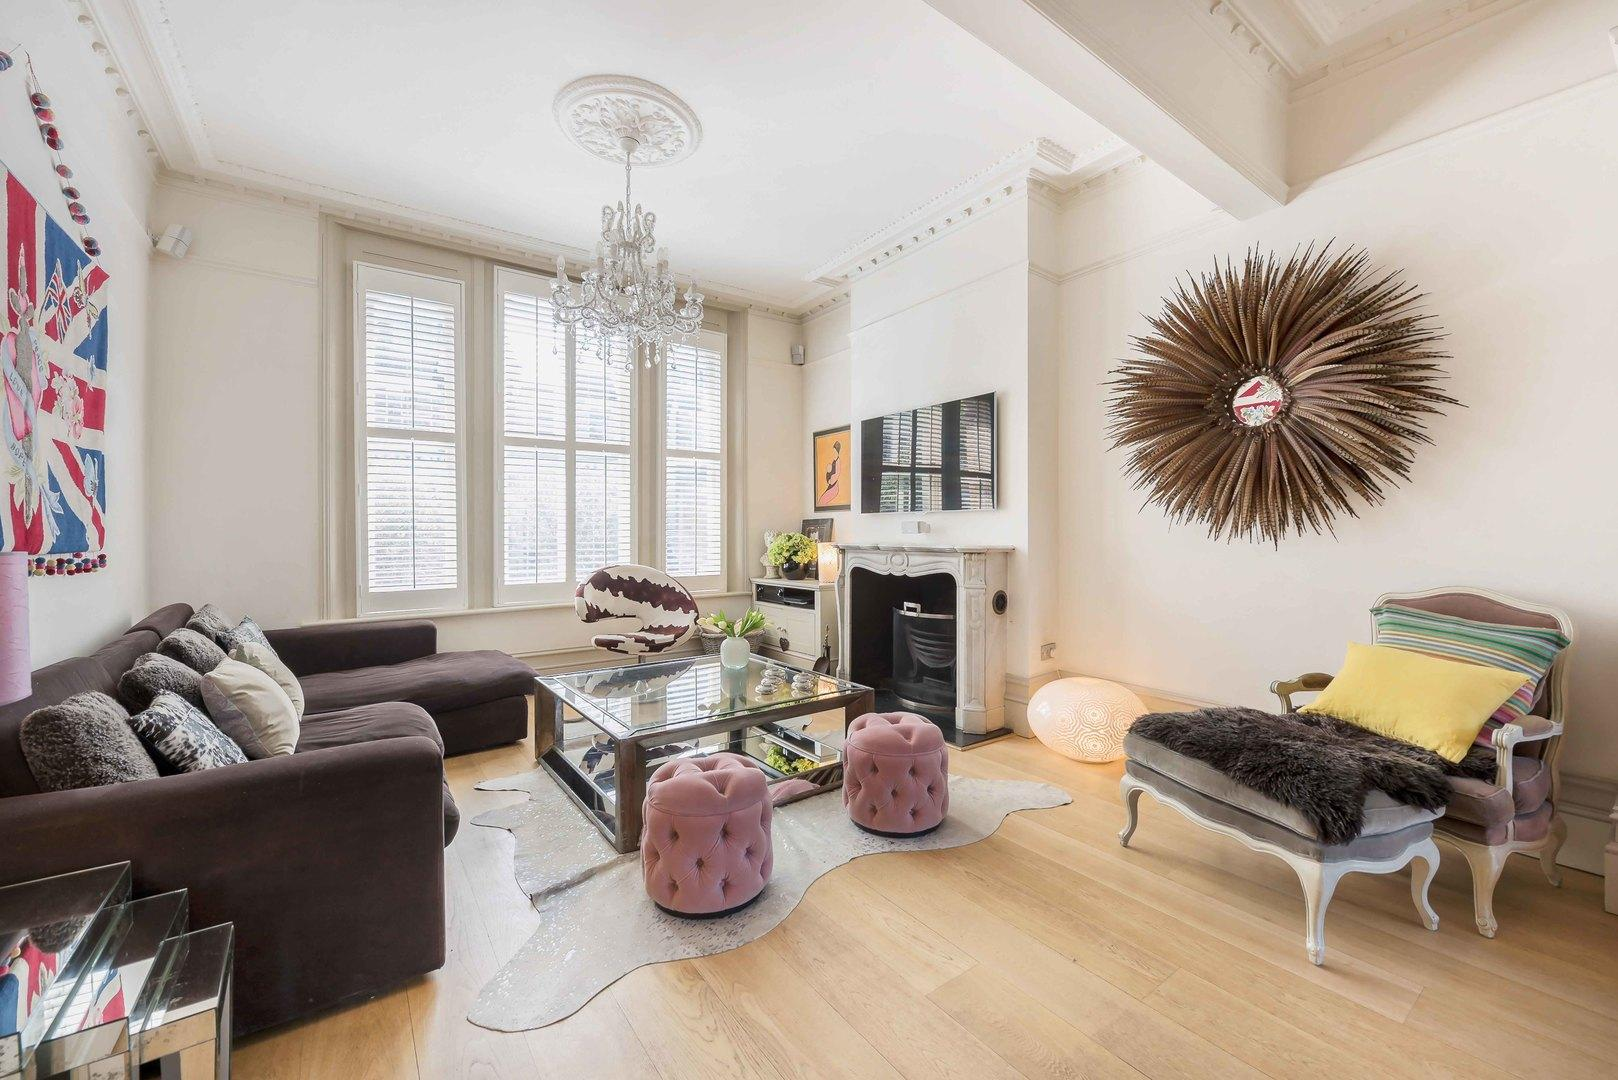 Property Image 1 - Stylish Wandsworth Residence with Huge Garden and Pool